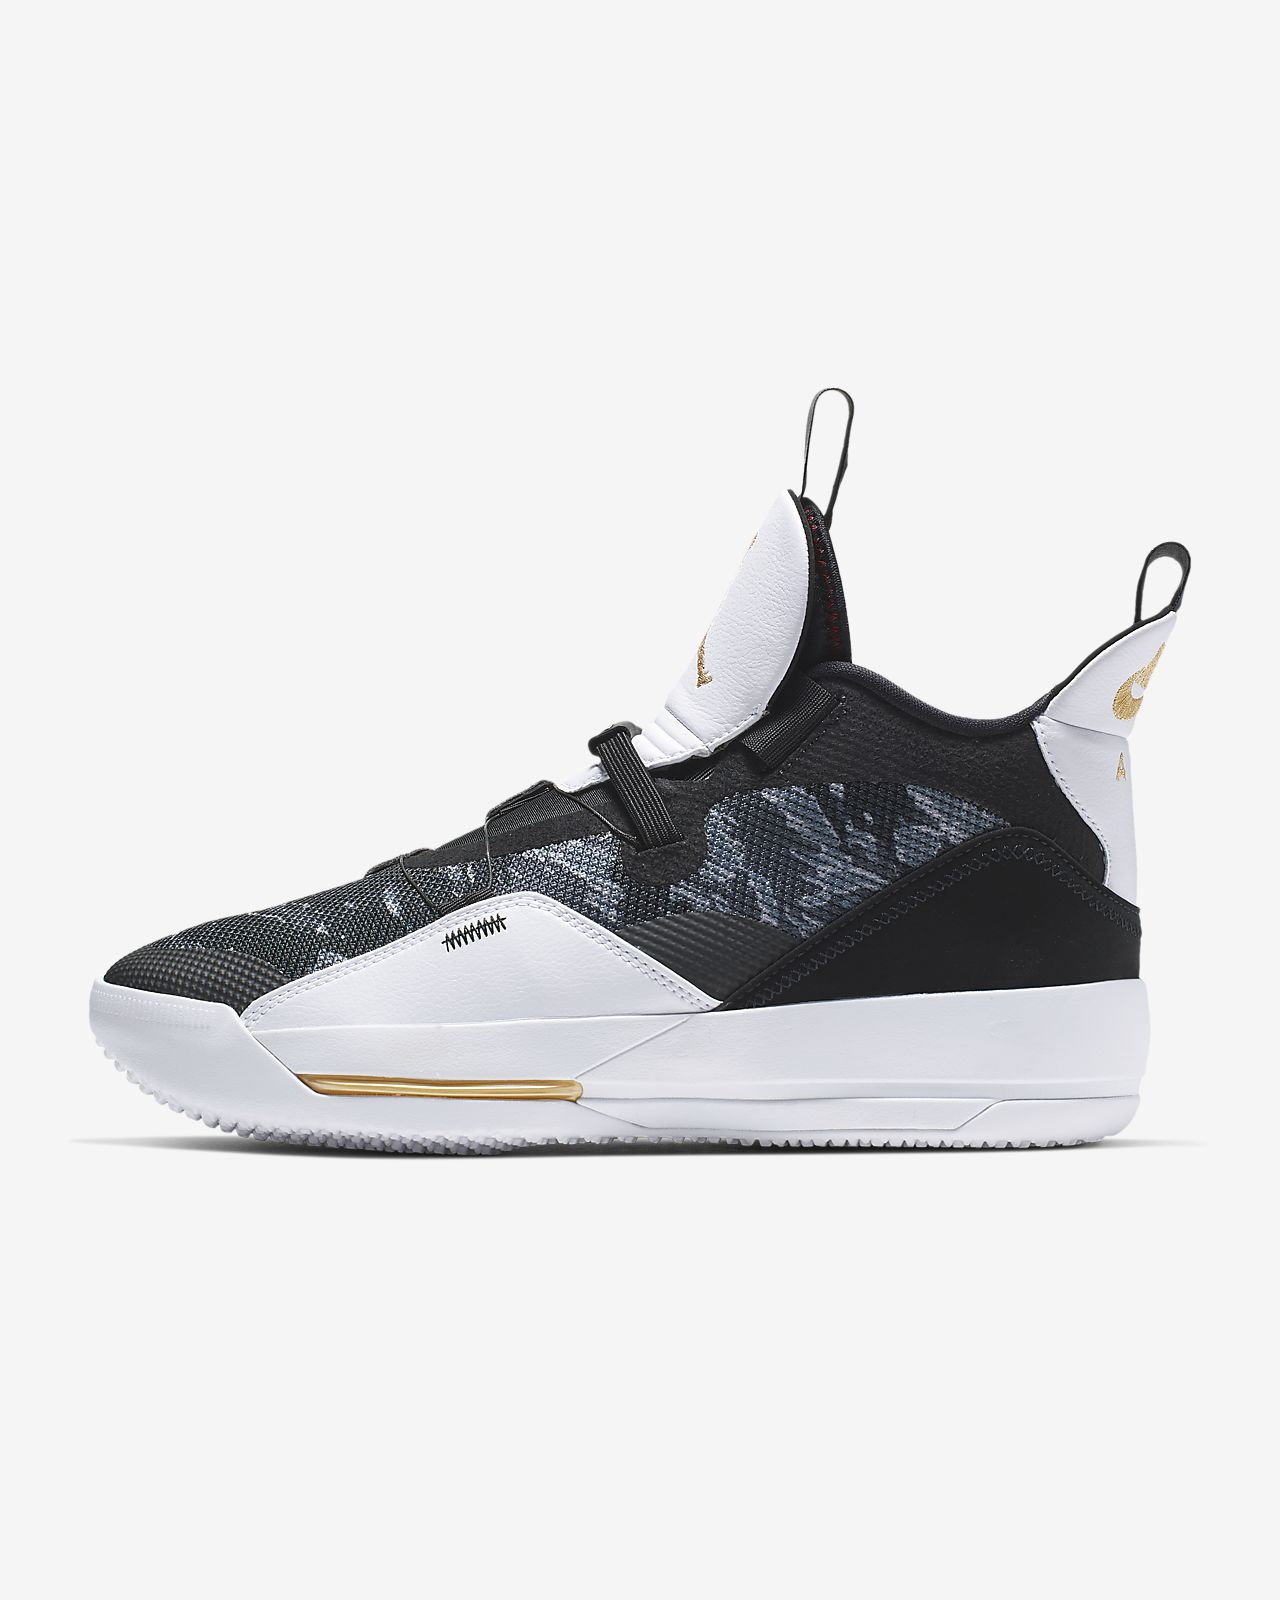 premium selection 1e41a 036d6 Air Jordan XXXIII Basketball Shoe. Nike.com MY